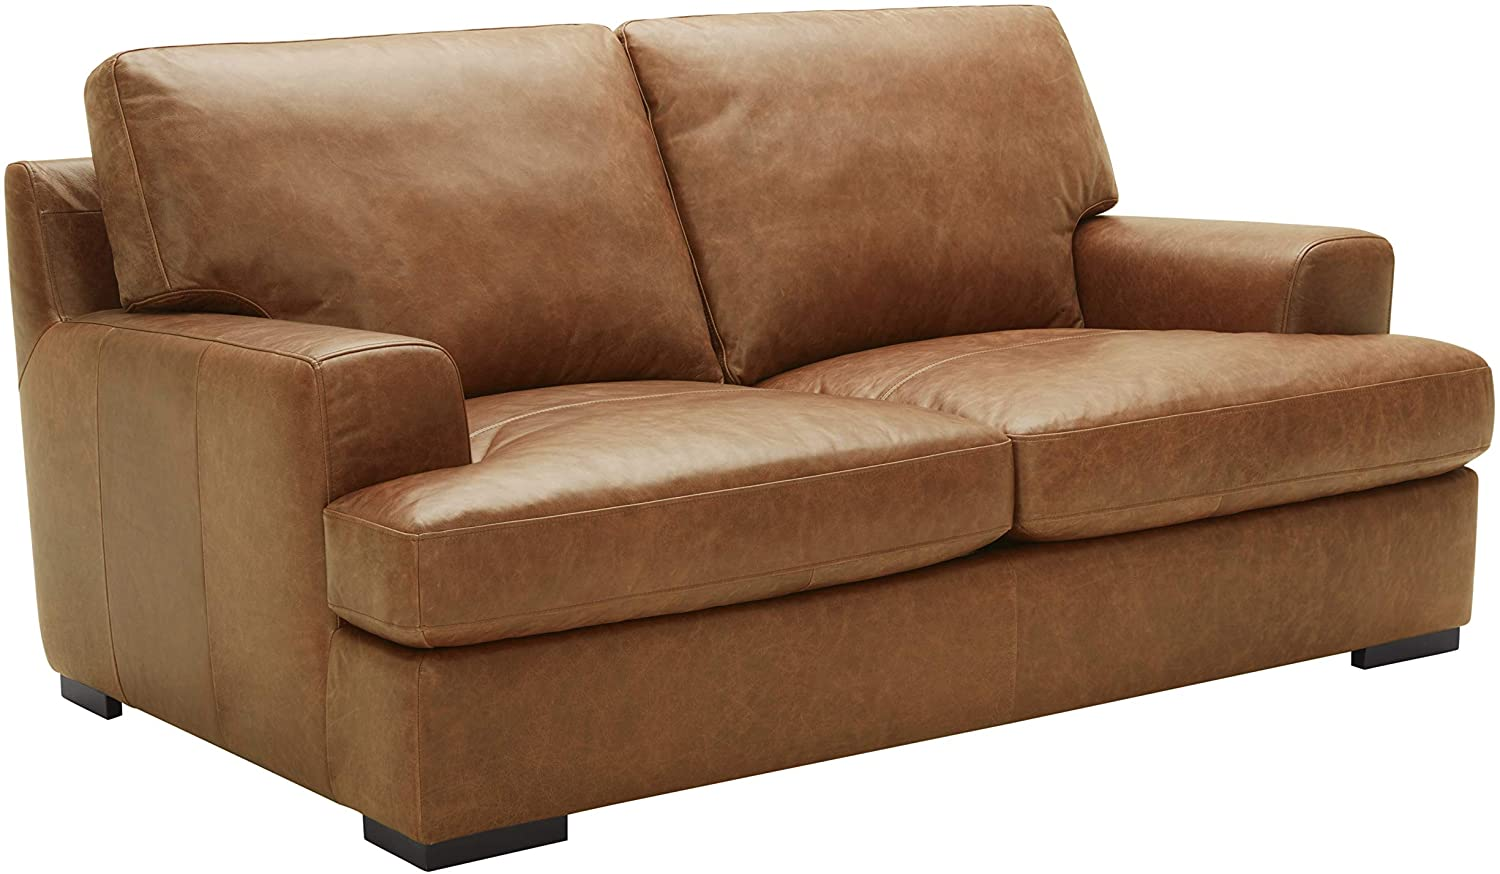 Picture of: 15 Best Sofas For Small Spaces Stylish Apartment Sized Couches Apartment Therapy